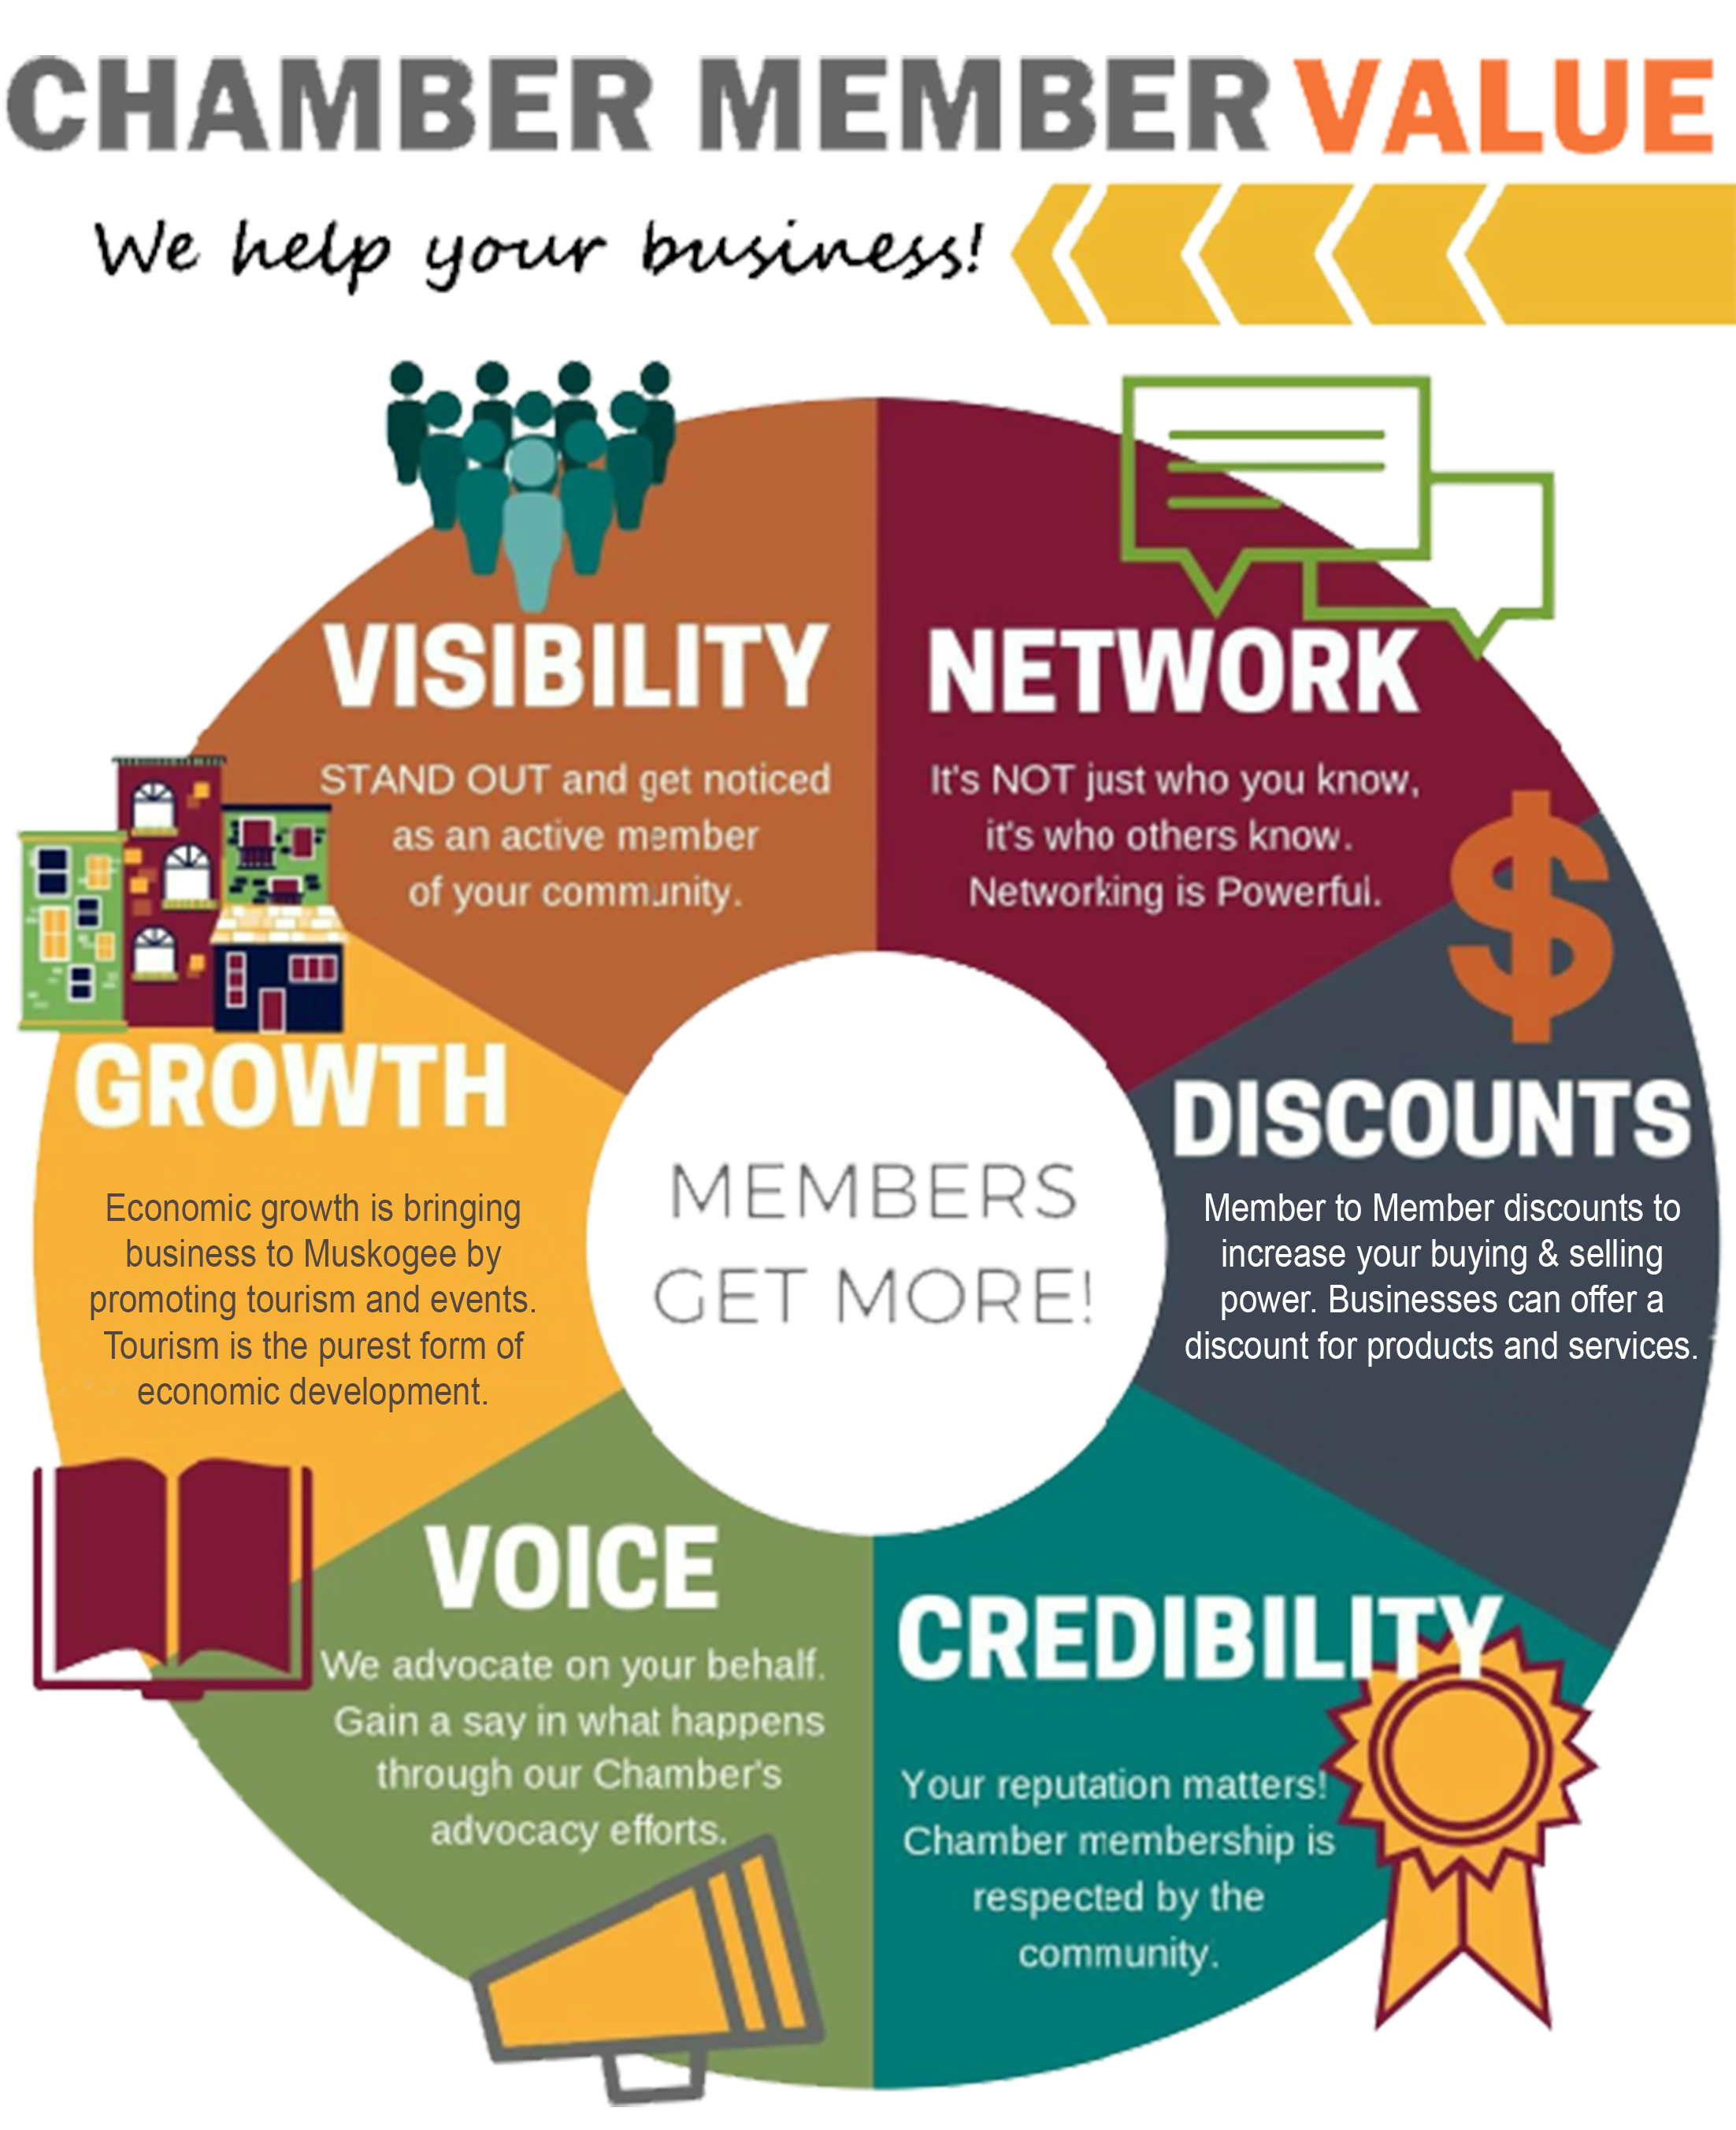 Member benefits of muskogee chamber of commerce visit muskogee download a complete report of benefits and features of membership here chamber member value maxwellsz